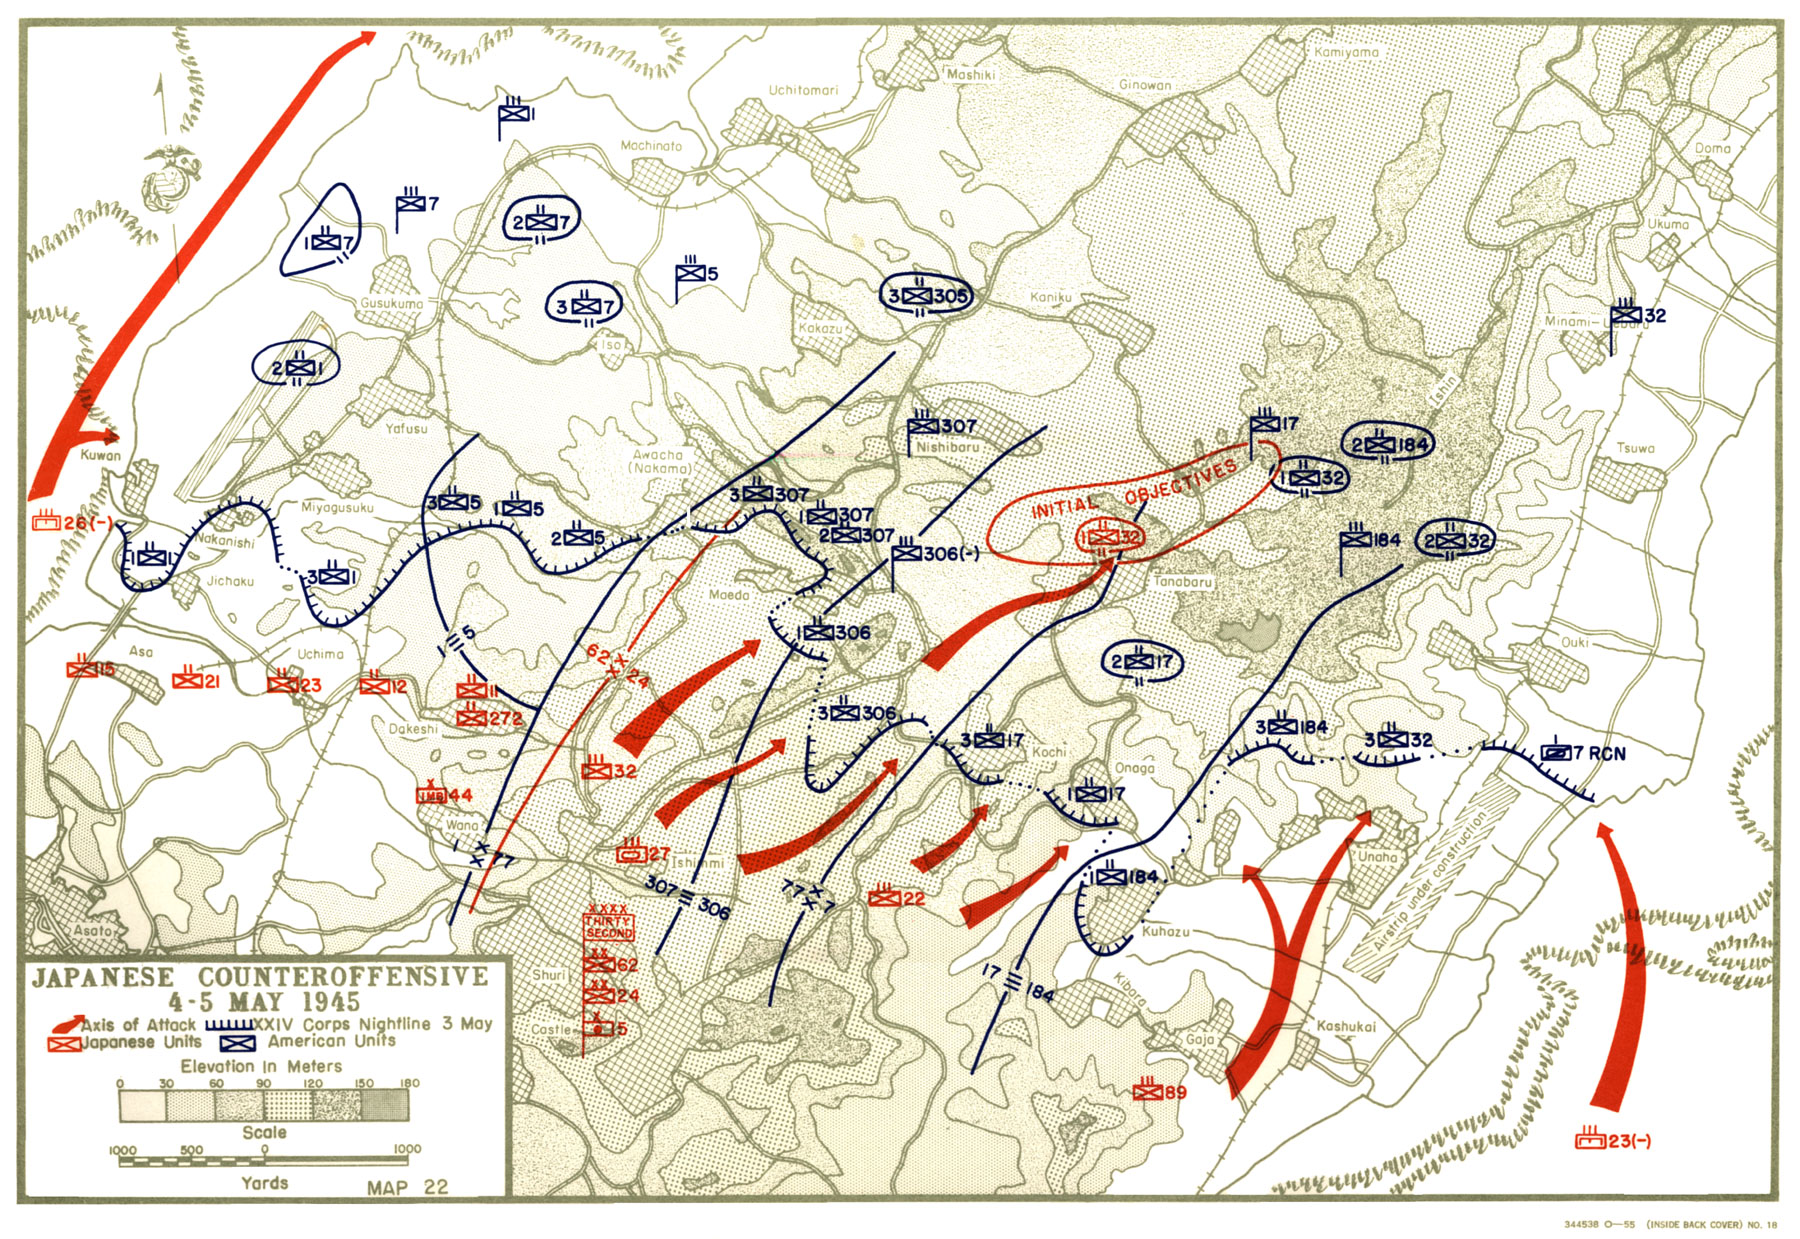 D Line Drawings Locations : Hyperwar usmc monograph okinawa victory in the pacific